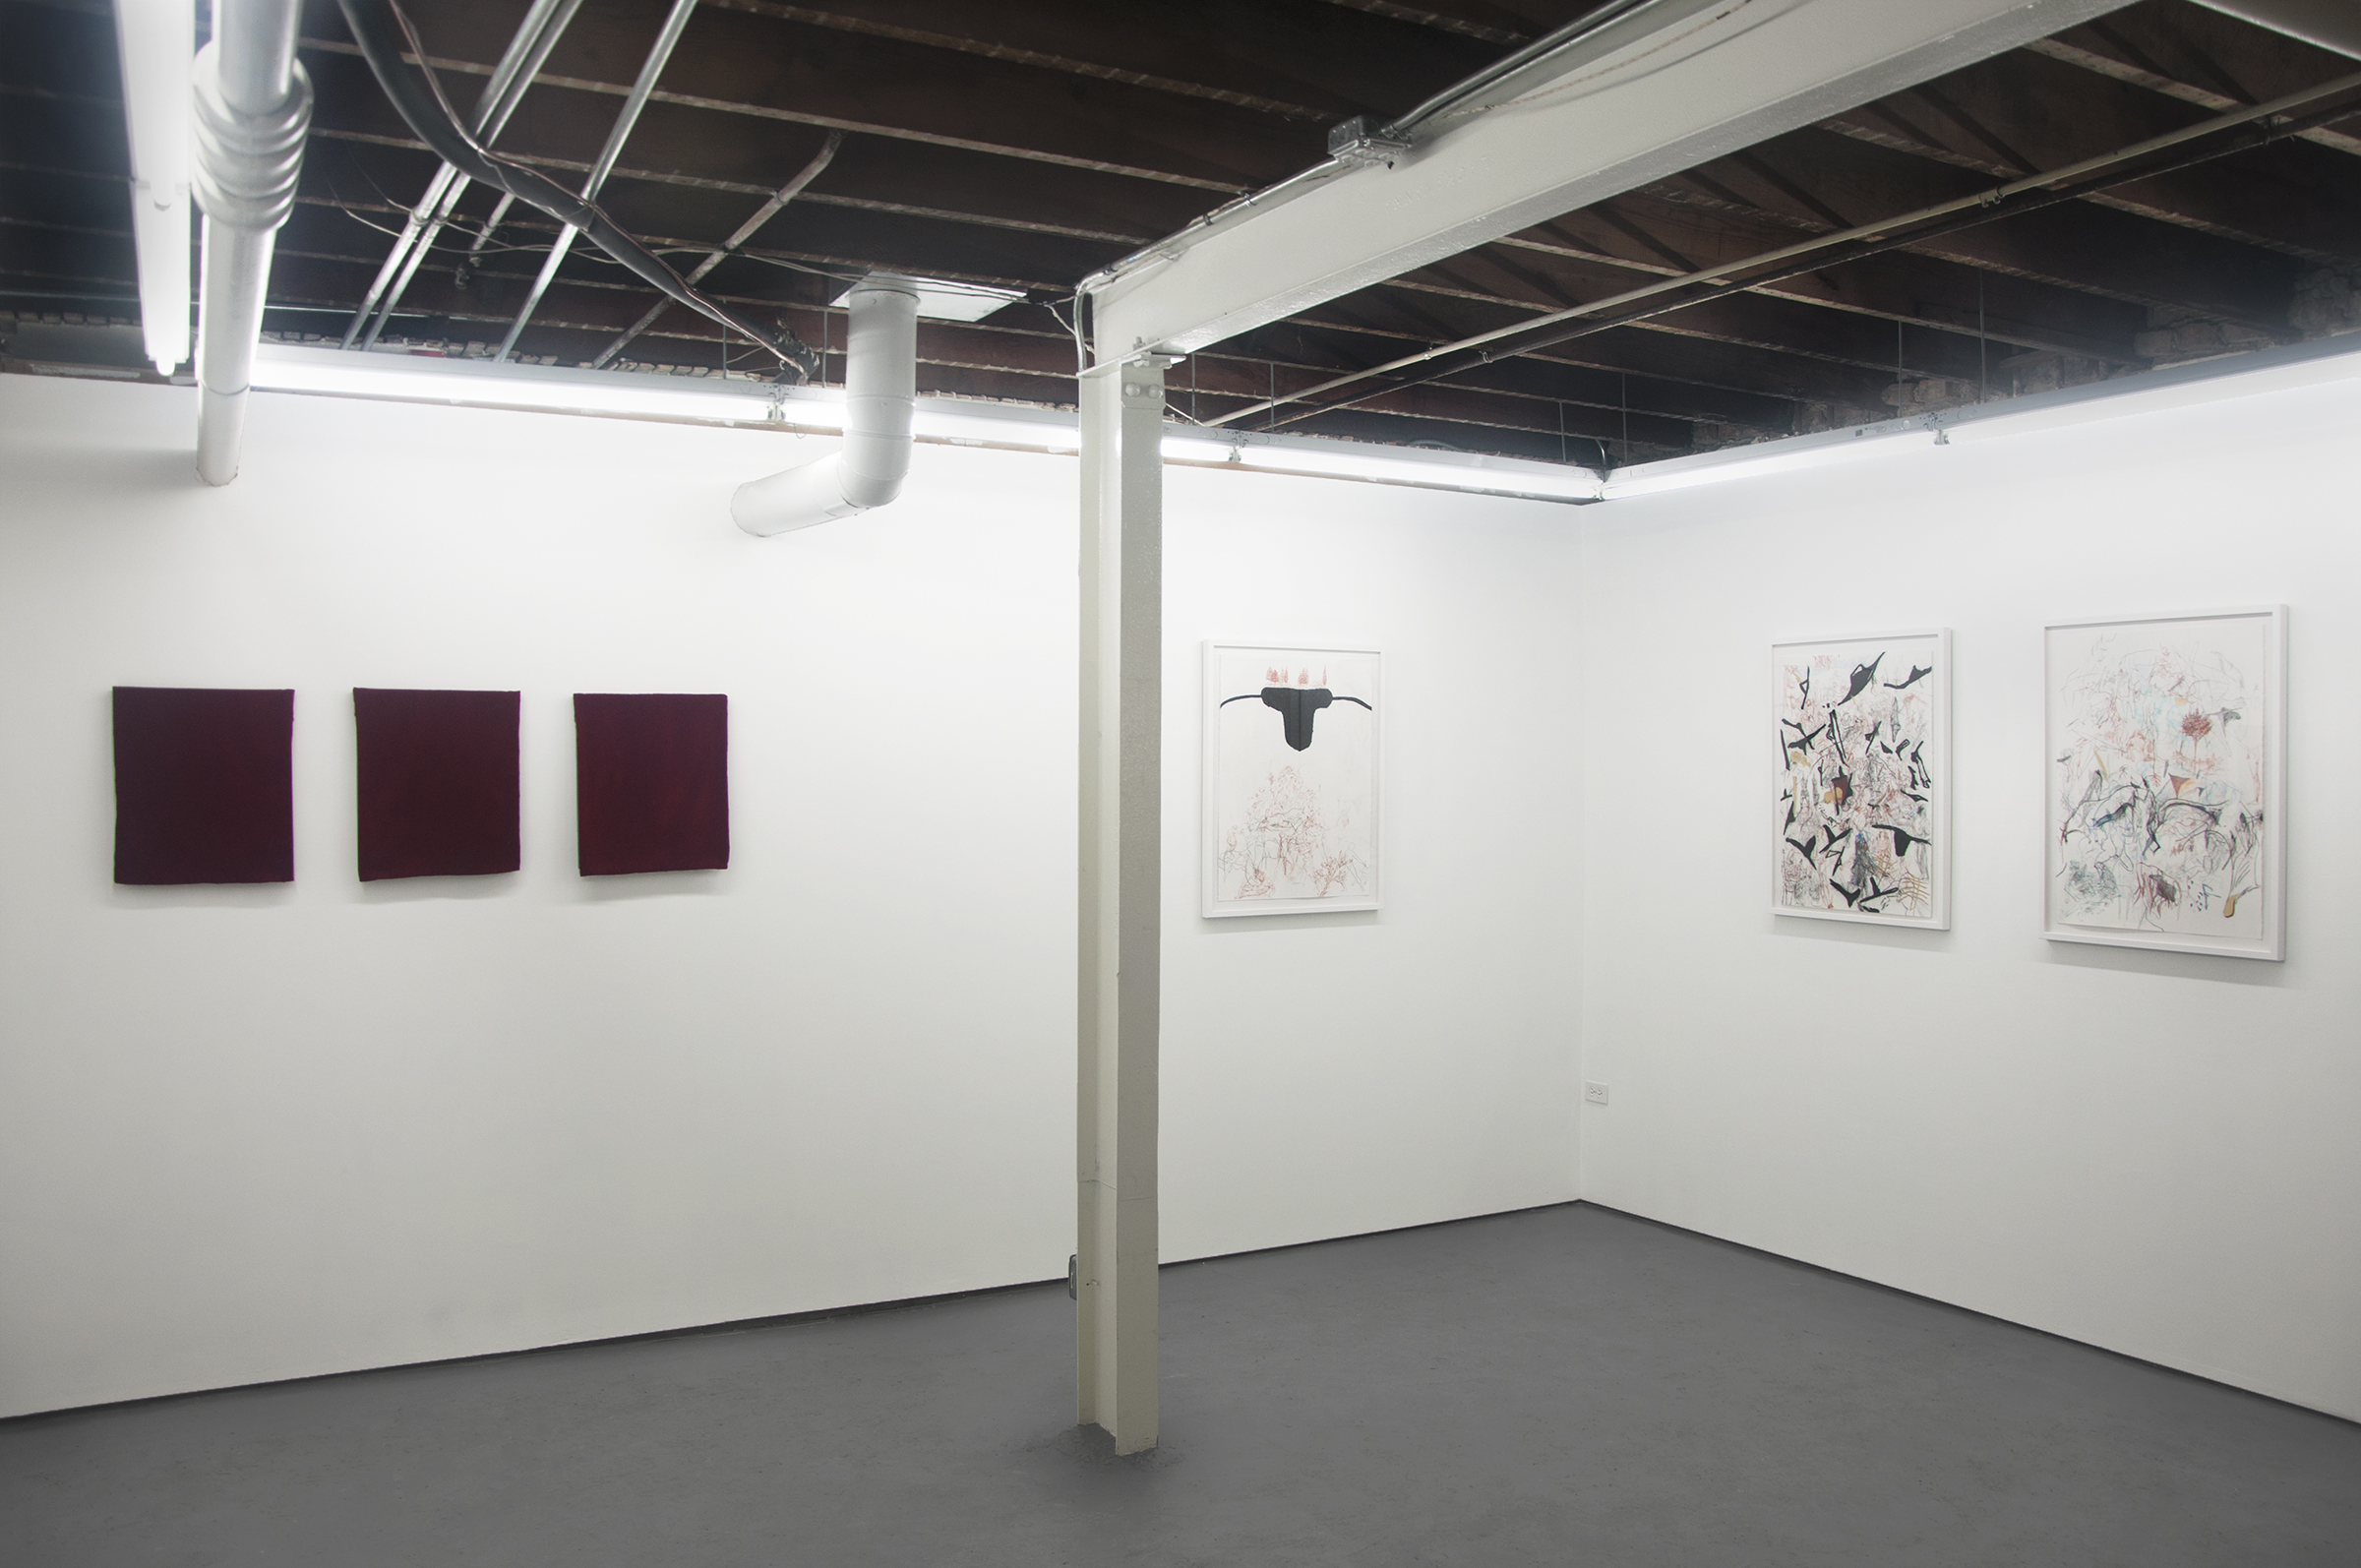 "Frontward Tilt (from left to right), Jeremy Biles, ""Ariadne's Thread"", 2015, digital print with graphite and wax crayon on newsprint with velvet veil; Jeremy Biles, ""The Sensation of Time"", 2015, digital print with graphite, colored pencil, and collage on newsprint with velvet veil; Jeremy Biles, 2015, ""Mirror of Tauromachy"", digital print with graphite, colored pencil, and semen on newsprint with velvet veil; Rebecca Walz + Ryan M. Pfeiffer, 2015, ""The Annunciation"", Chalk Lead & Charcoal; Rebecca Walz + Ryan M. Pfeiffer, ""The Labyrinth"", 2015, Graphite, Chalk Lead, Colored Pencil, Charcoal, Iron Oxide & Gold Leaf; Rebecca Walz + Ryan M. Pfeiffer, ""The Adjustment"", 2015, Graphite, Chalk Lead, Water Color, Colored Pencil, Charcoal & Gold Leaf."